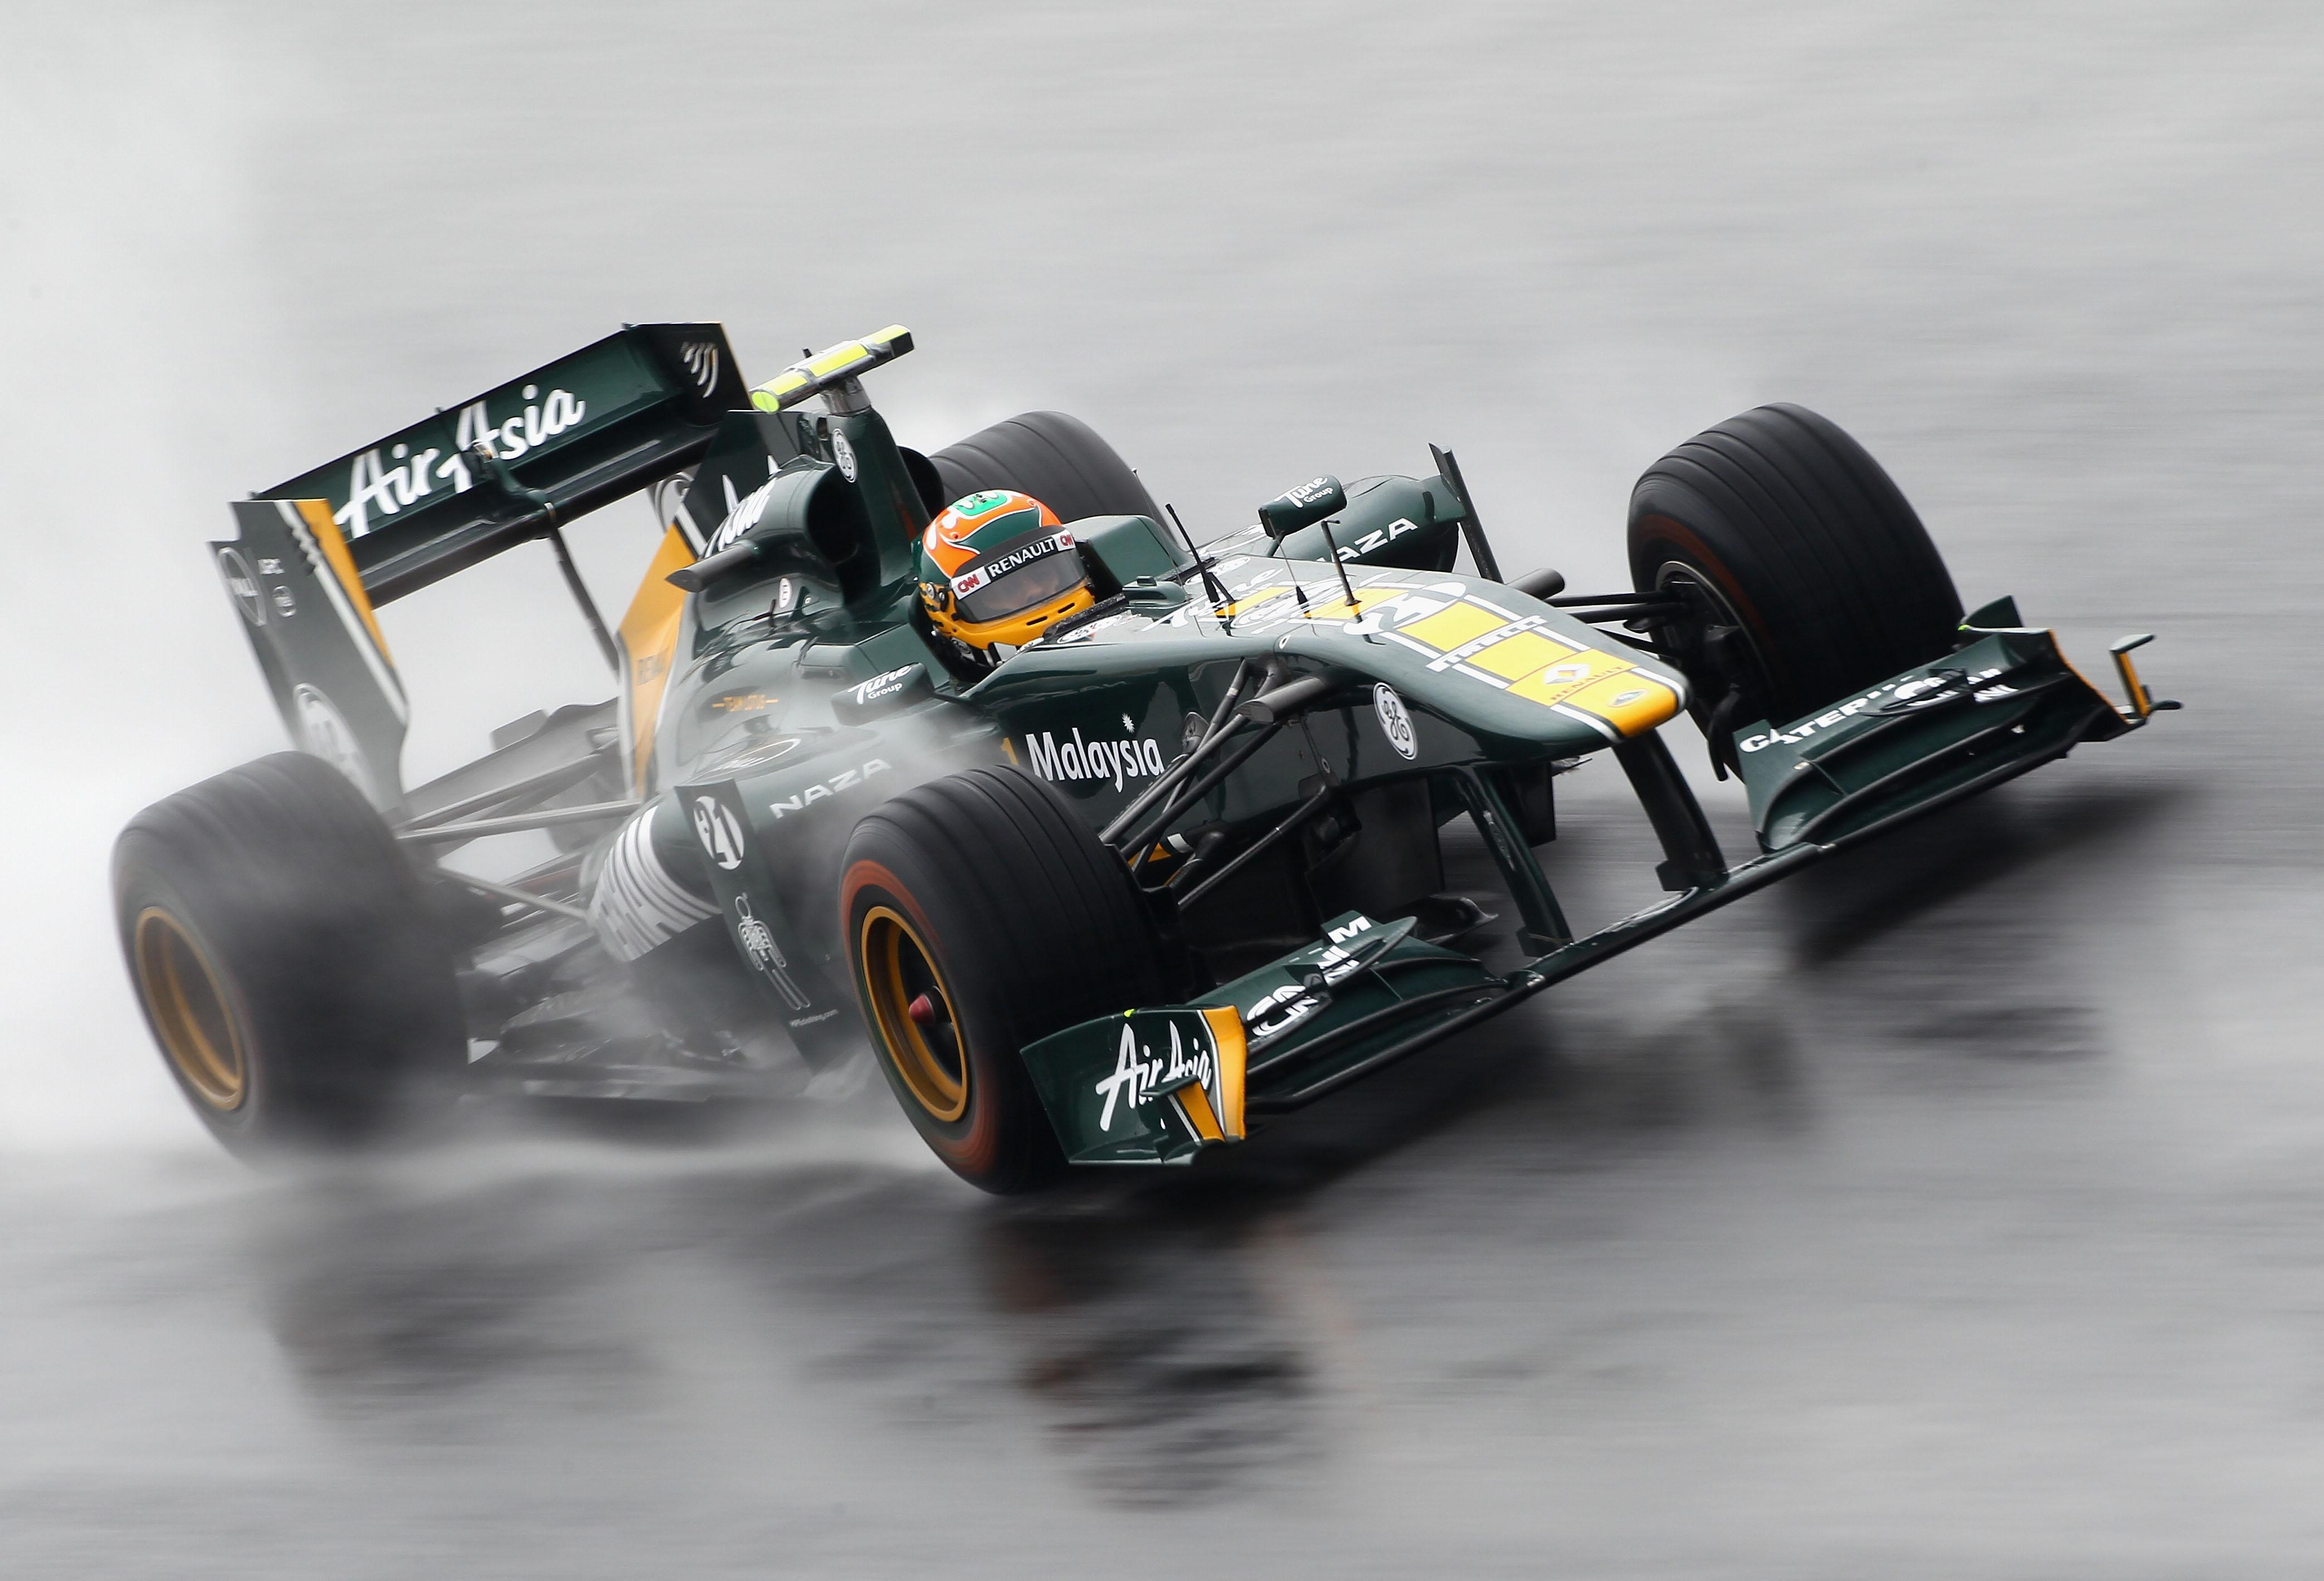 Karun Chandhok of Team Lotus drives during practice for the Korean Formula One Grand Prix in 2011